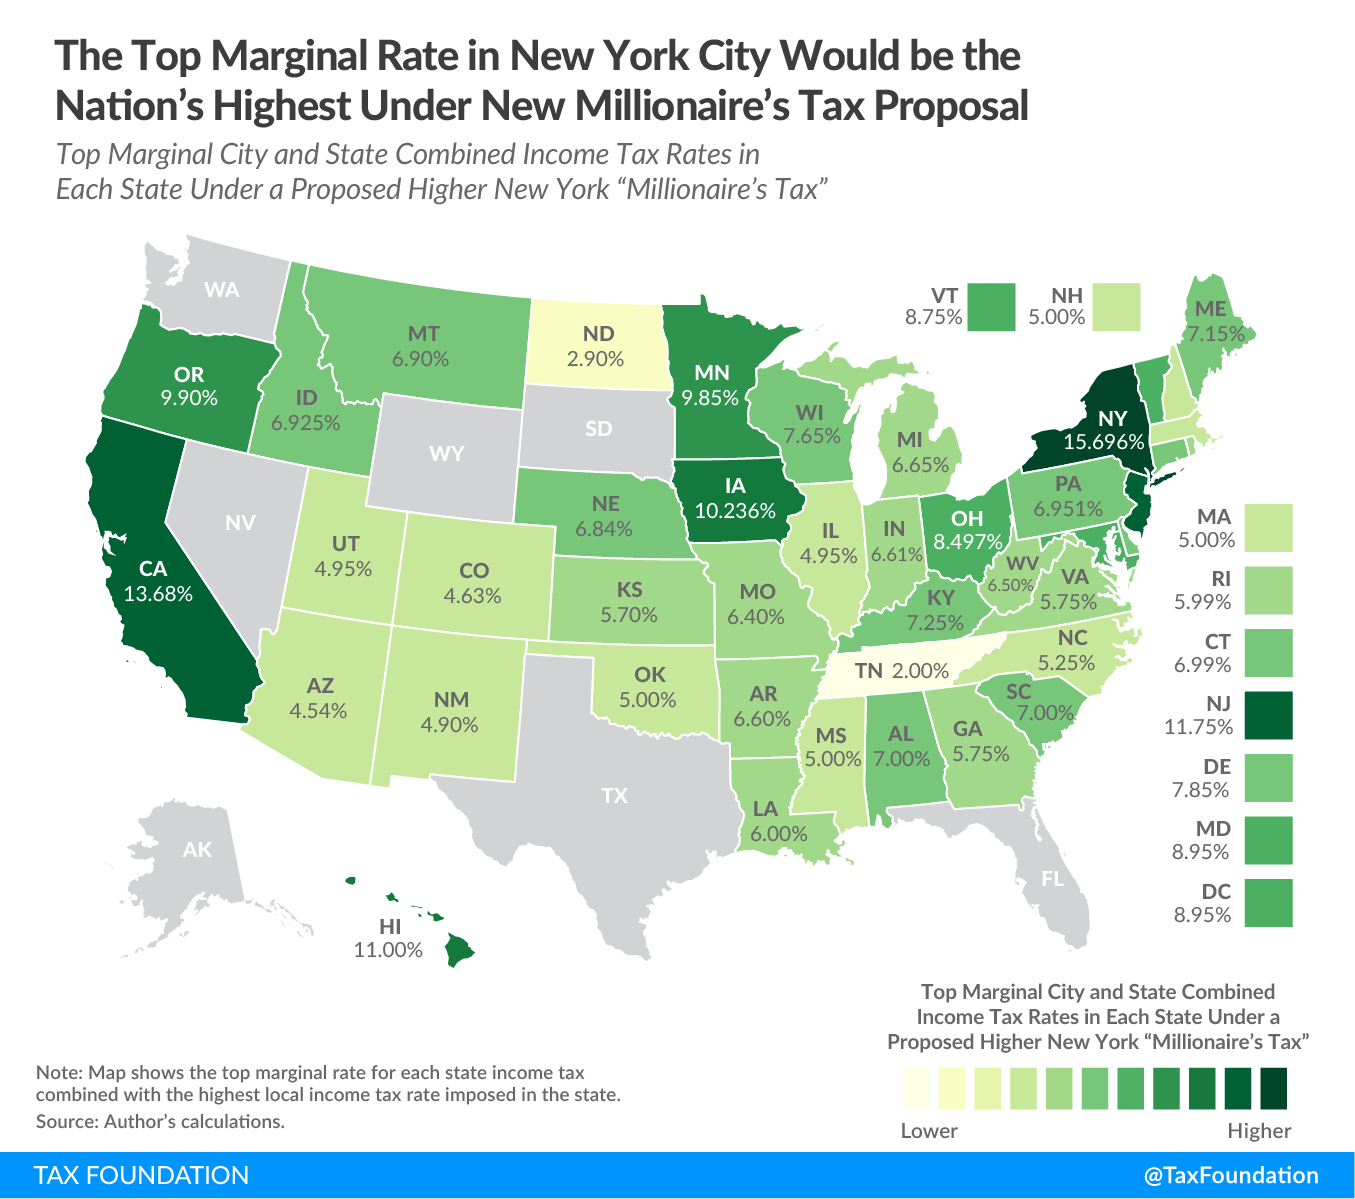 The top marginal tax rate in New York City would be the nation's highest under new New York millionaire's tax proposal, New York millionaires tax. New York budget gap, New York revenue shortfall, New York fiscal crisis